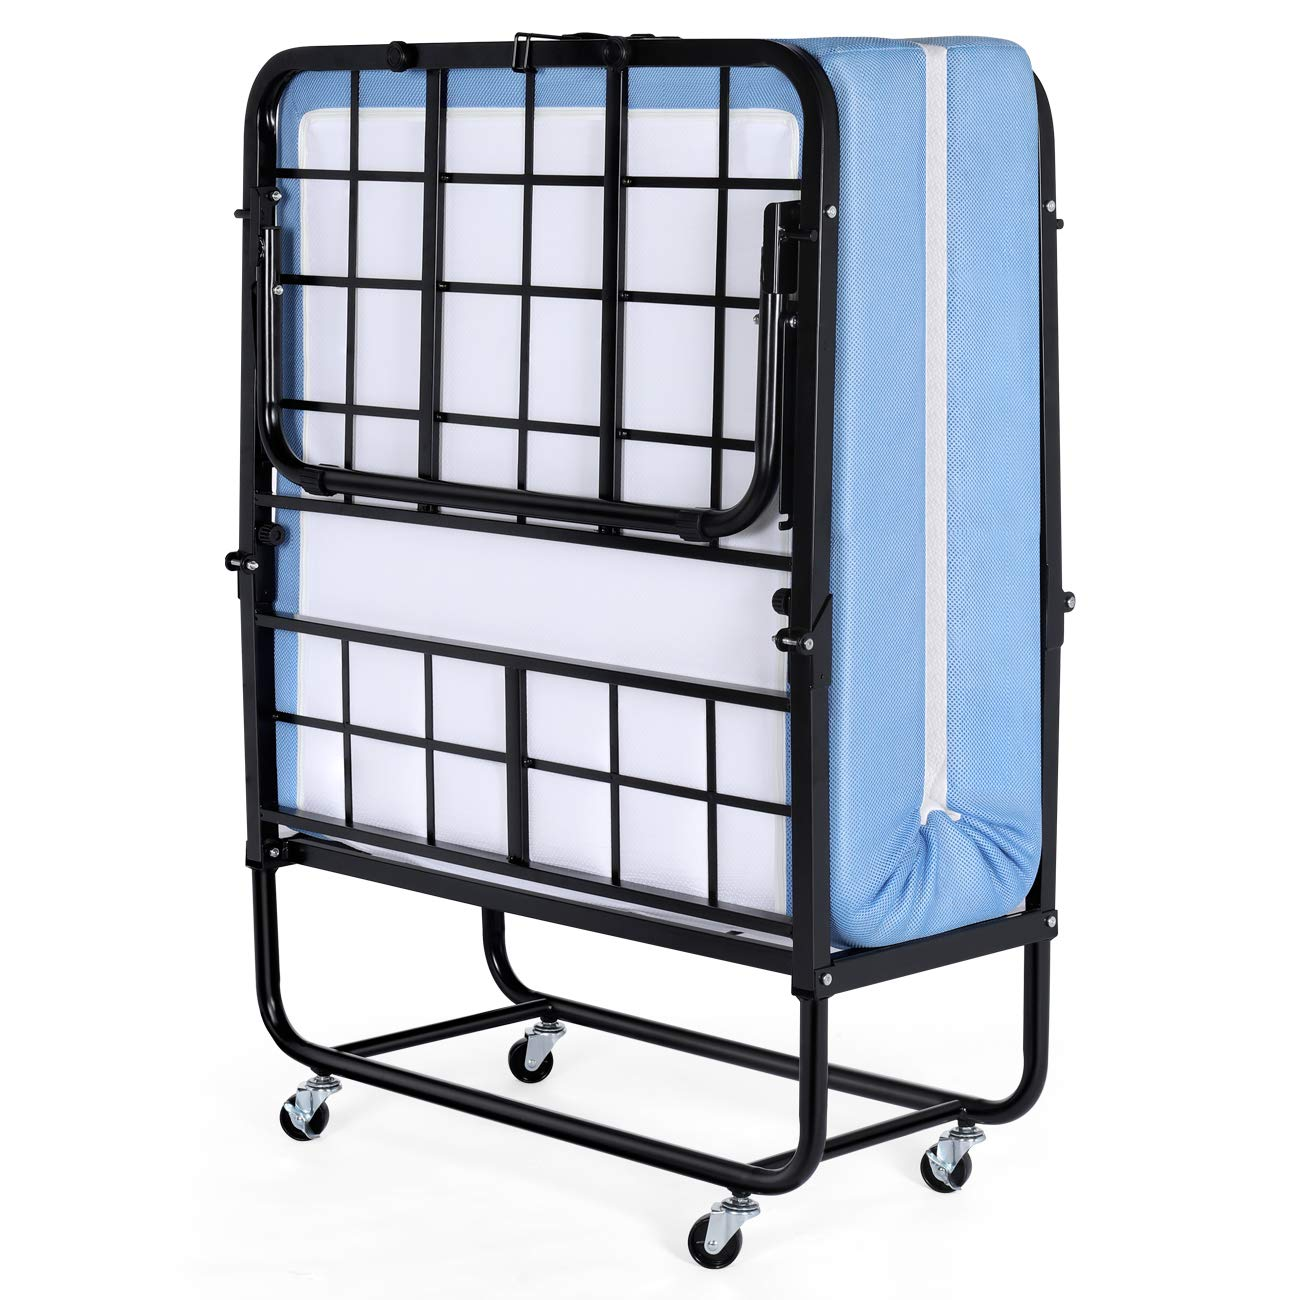 Inofia Foldable Folding Bed, Rollaway Extra Guest Bed with 5 Inch Memory Foam Mattress and Portable Metal Frame on Wheels